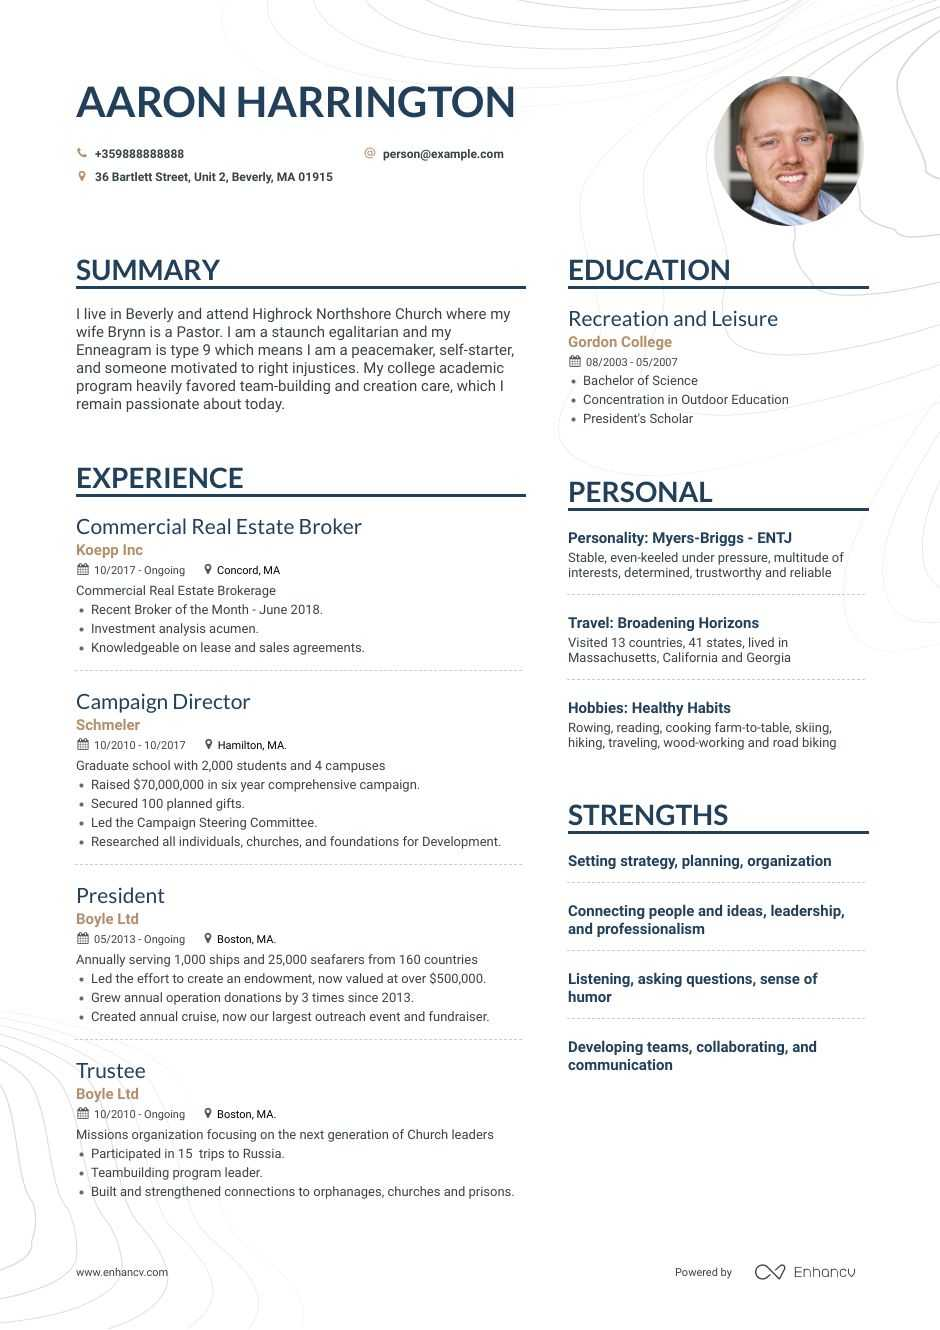 estate resume examples and skills you need to get hired broker federal ksa additional Resume Real Estate Broker Resume